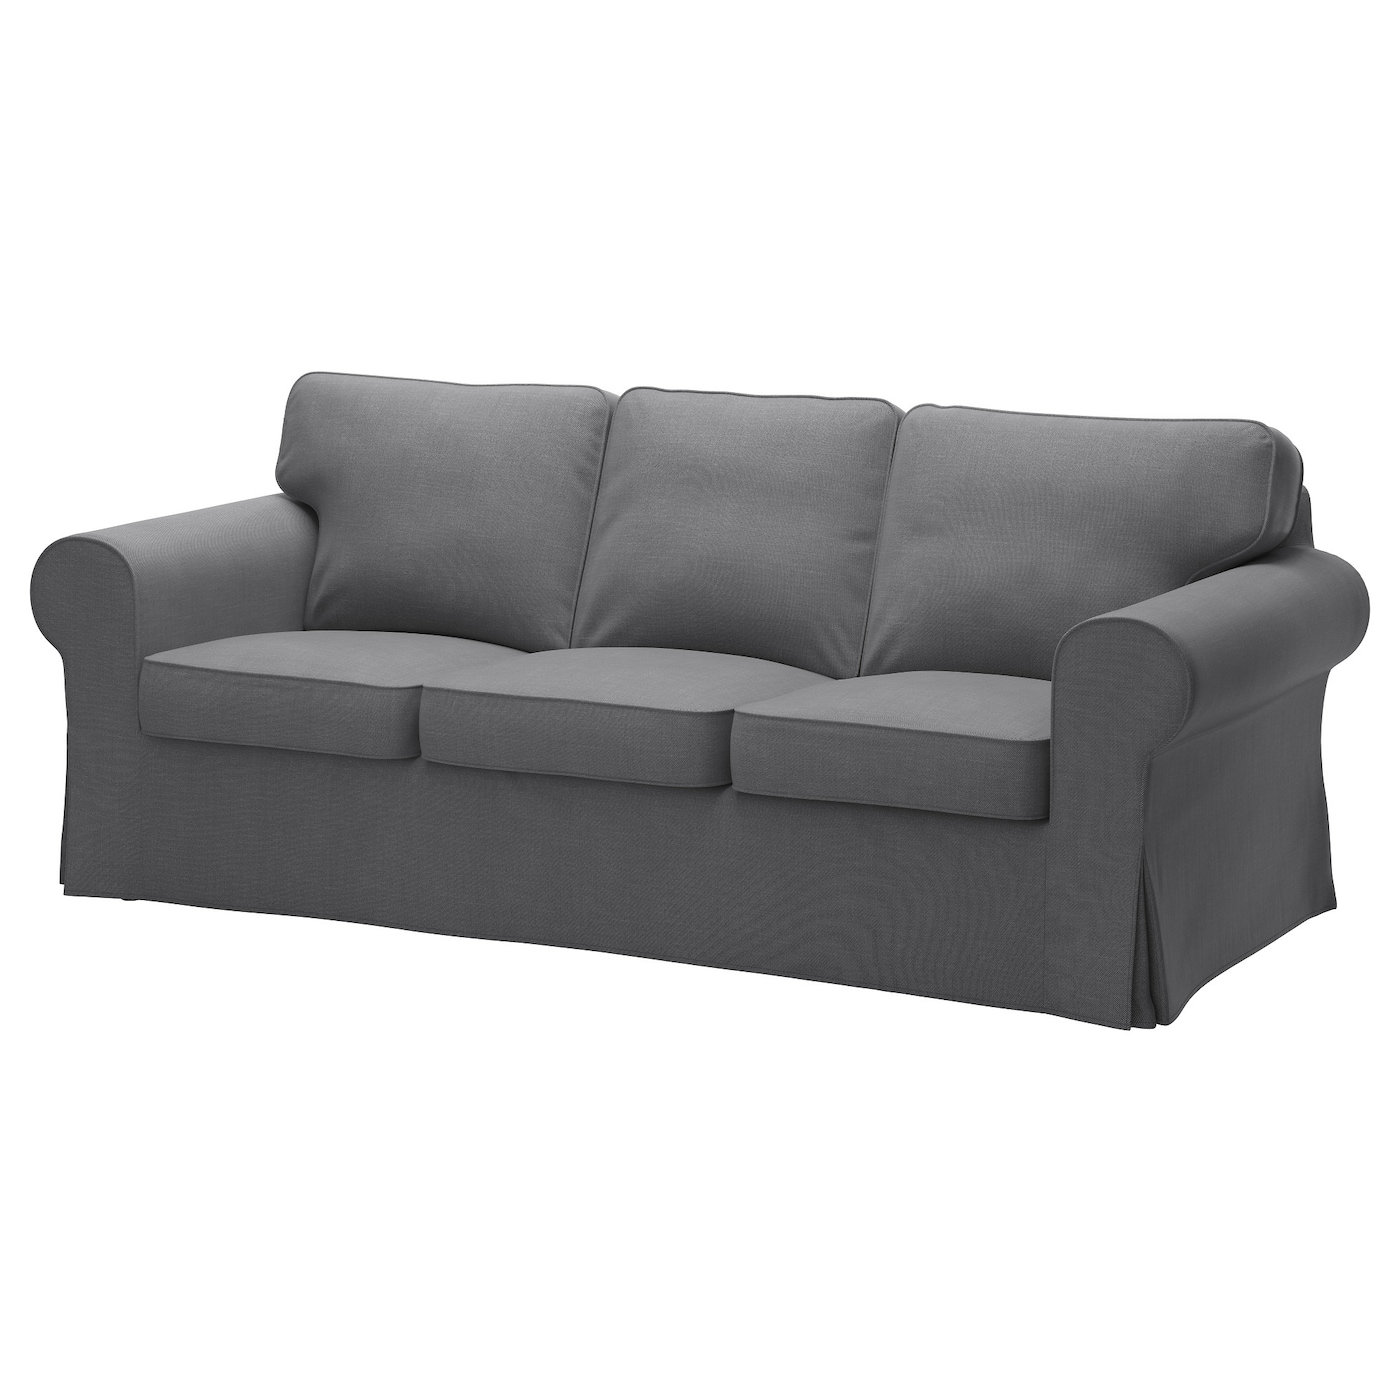 sofaecke grau free with sofaecke grau kamma seater sofa. Black Bedroom Furniture Sets. Home Design Ideas